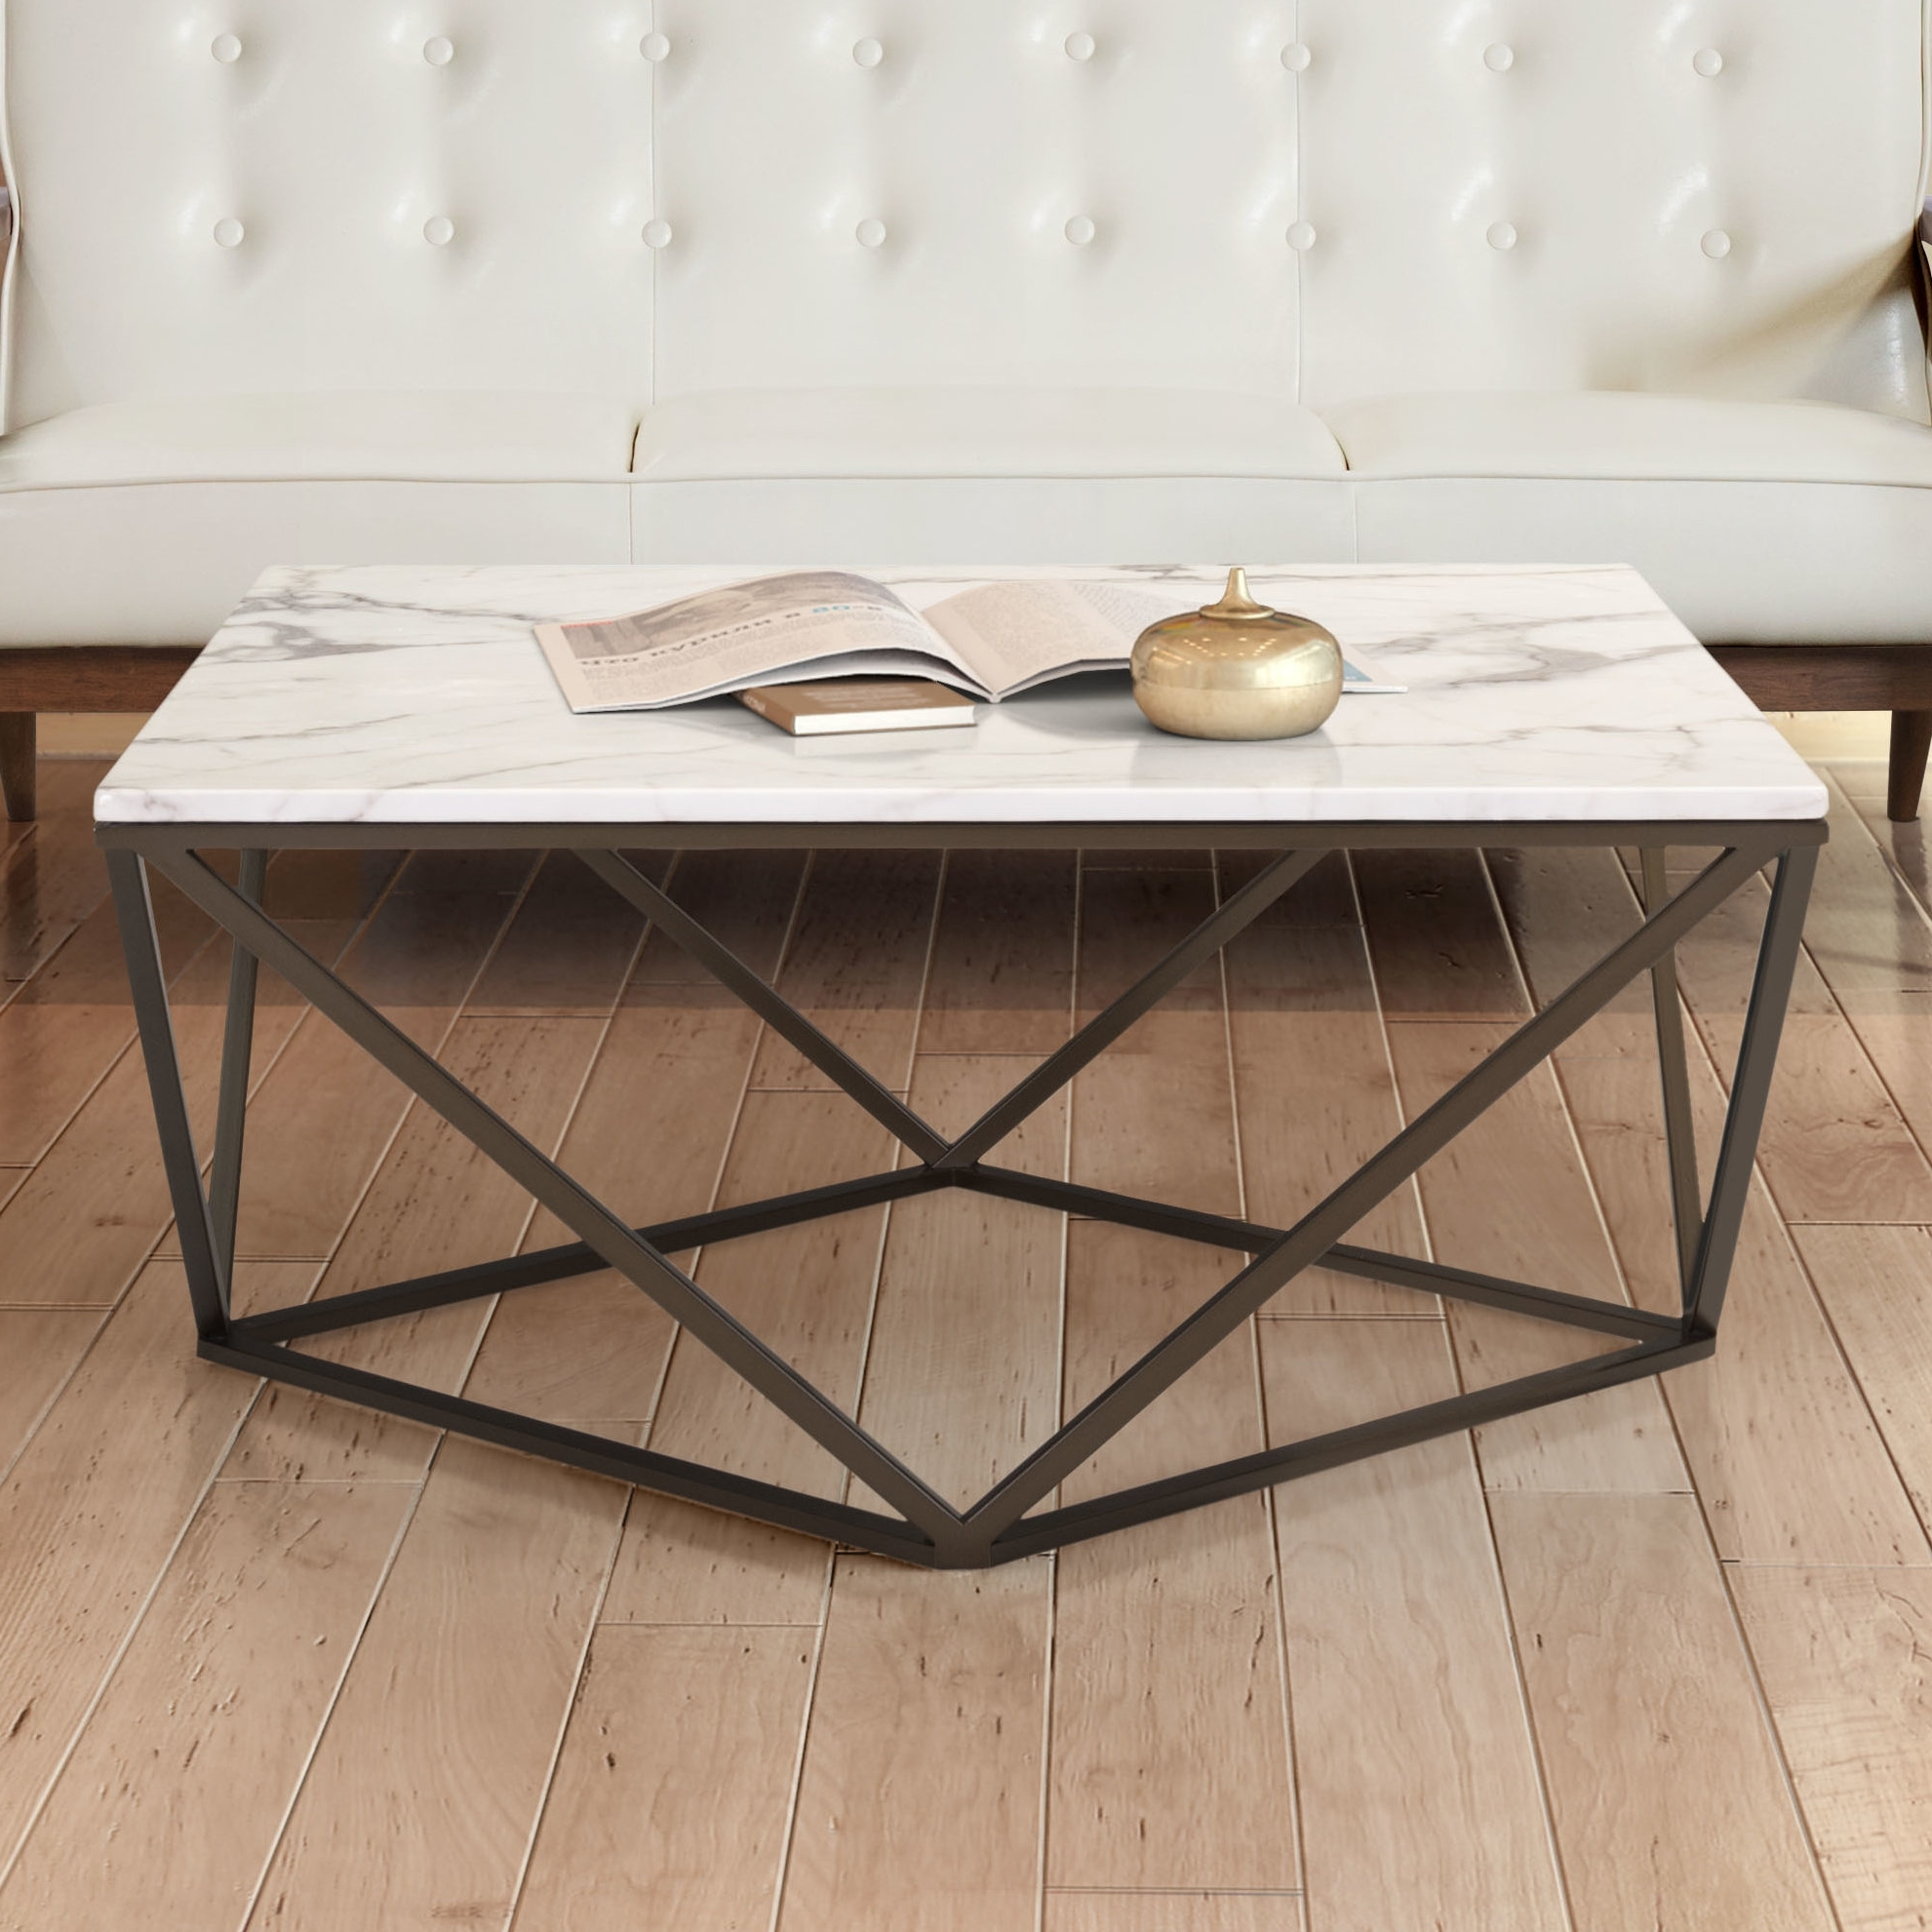 Wayfair Throughout Popular 2 Tone Grey And White Marble Coffee Tables (View 20 of 20)